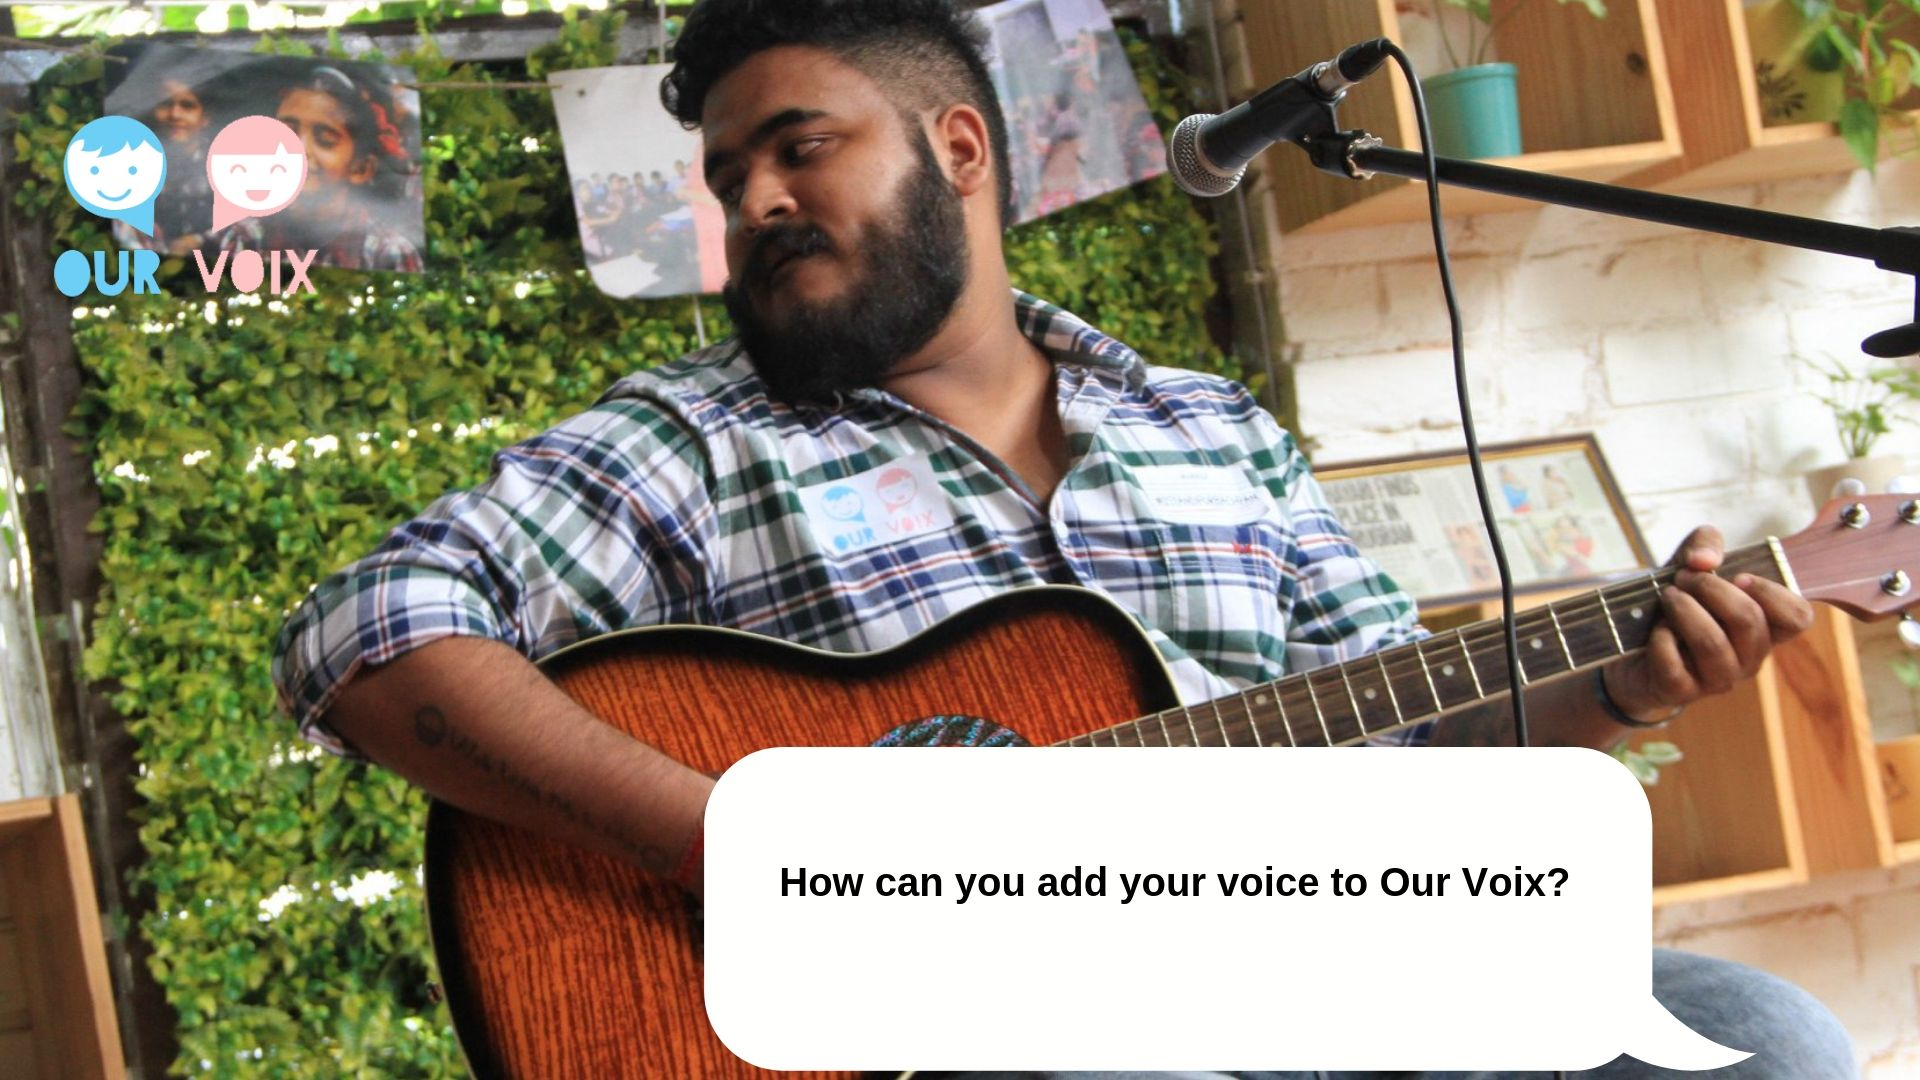 How can you add your voice to Our Voix?